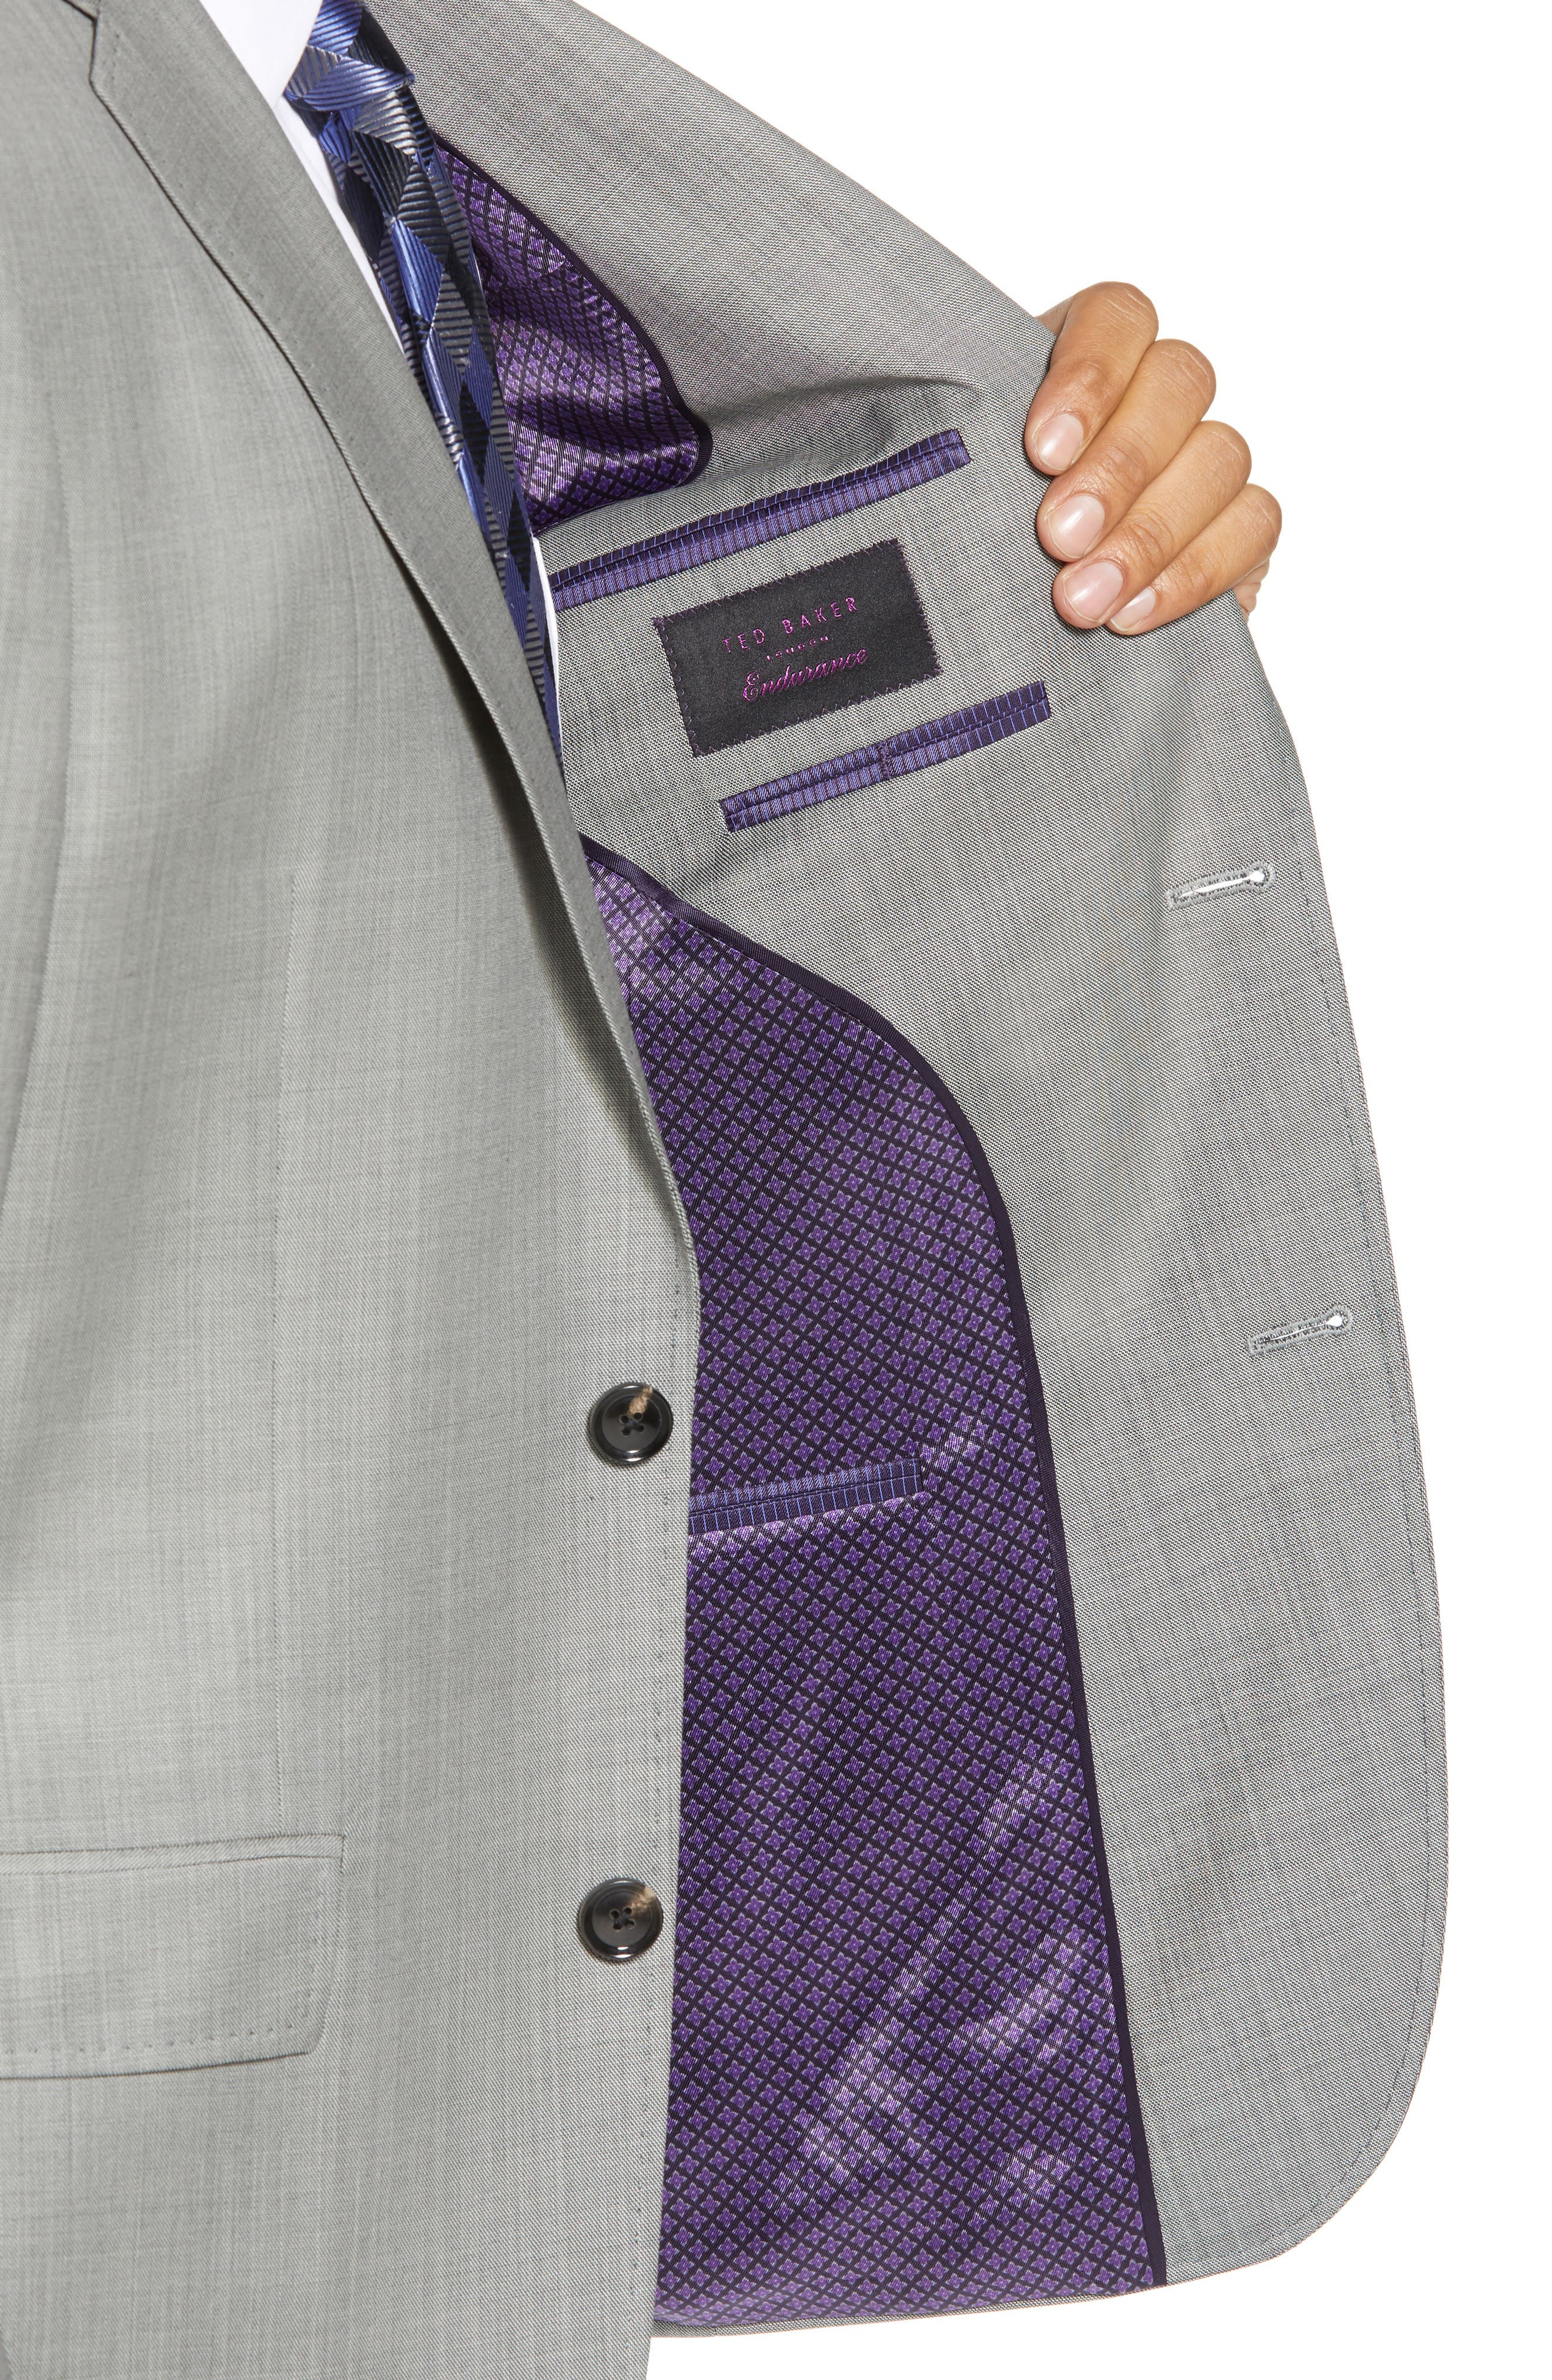 TED BAKER LONDON, Jay Trim Fit Solid Wool Suit, Alternate thumbnail 4, color, LIGHT GREY